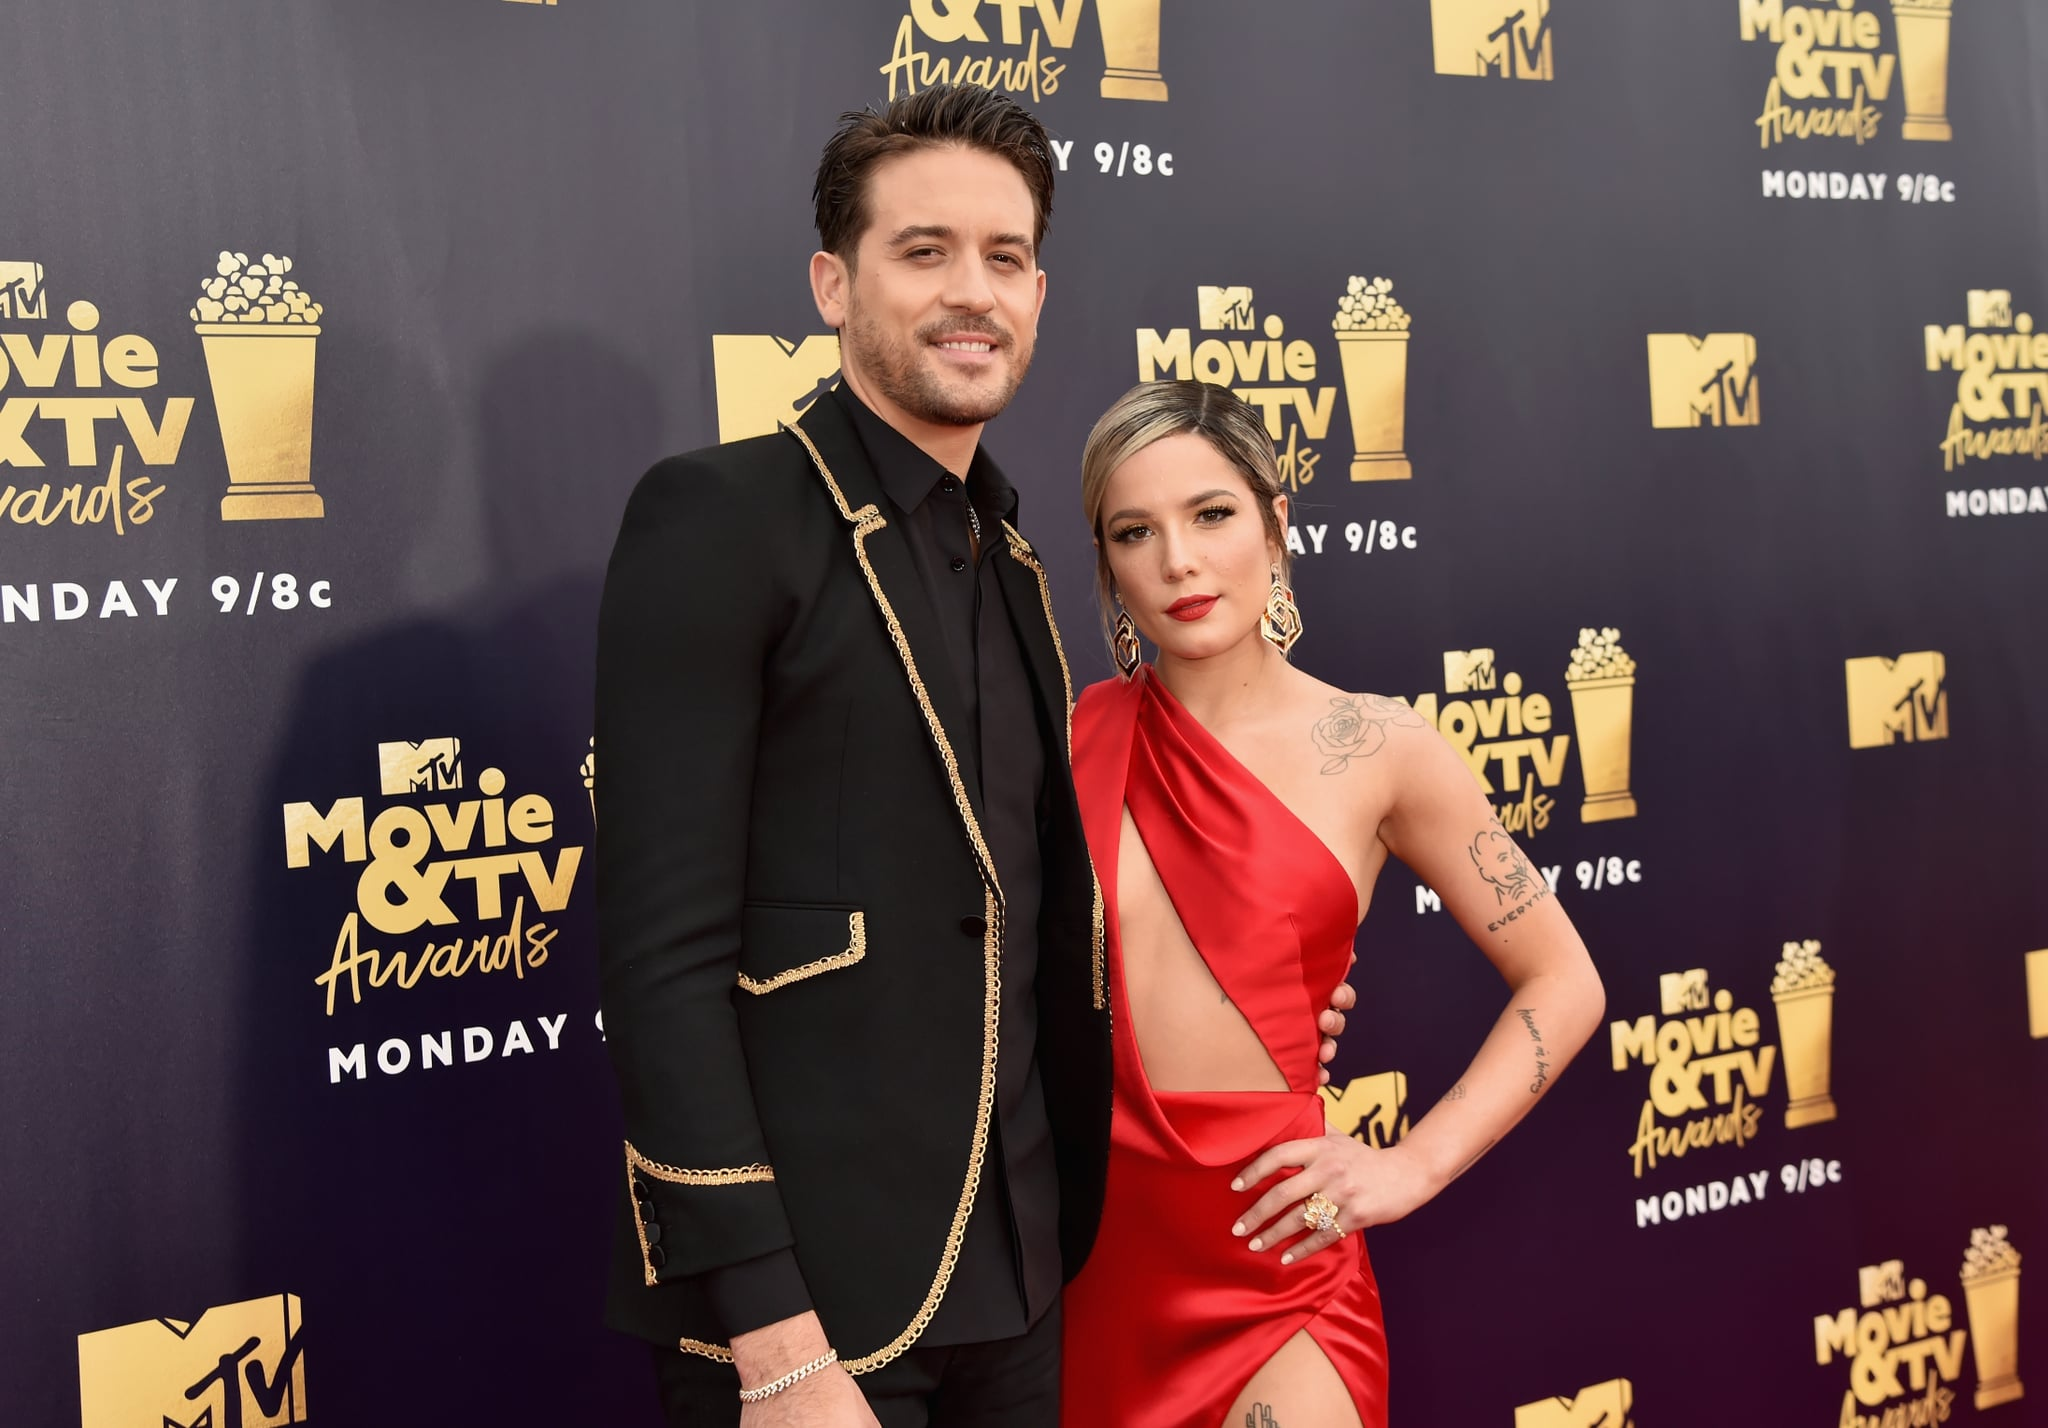 SANTA MONICA, CA - JUNE 16:  Recording artists G-Eazy (L) and Halsey attend the 2018 MTV Movie And TV Awards at Barker Hangar on June 16, 2018 in Santa Monica, California.  (Photo by Jeff Kravitz/FilmMagic)